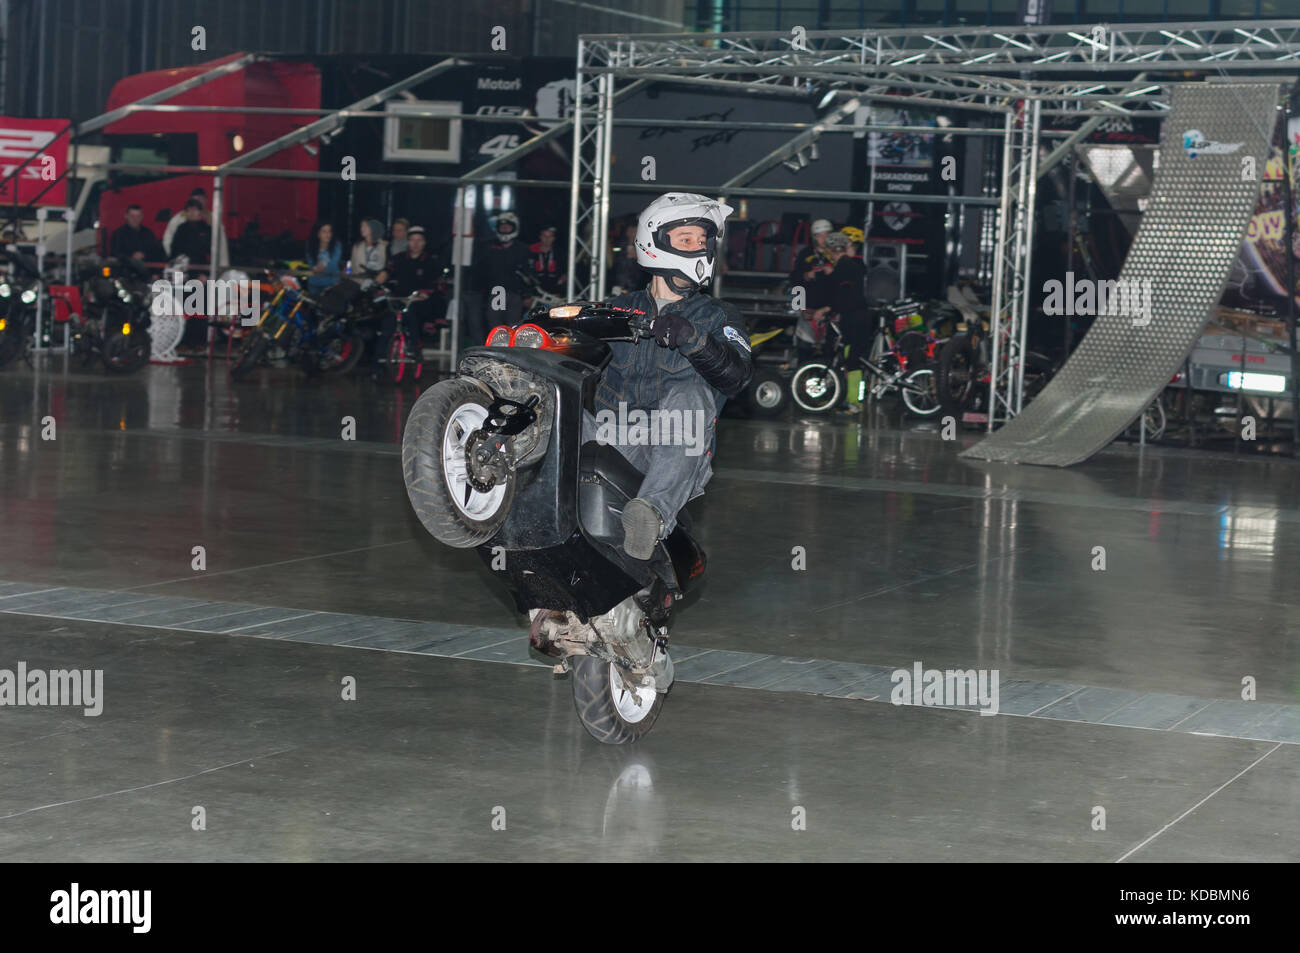 BRNO, CZECH REPUBLIC-MARCH 4,2016: Stuntman riding a scooter during stunt show on International Fair for Motorcycles - Stock Image